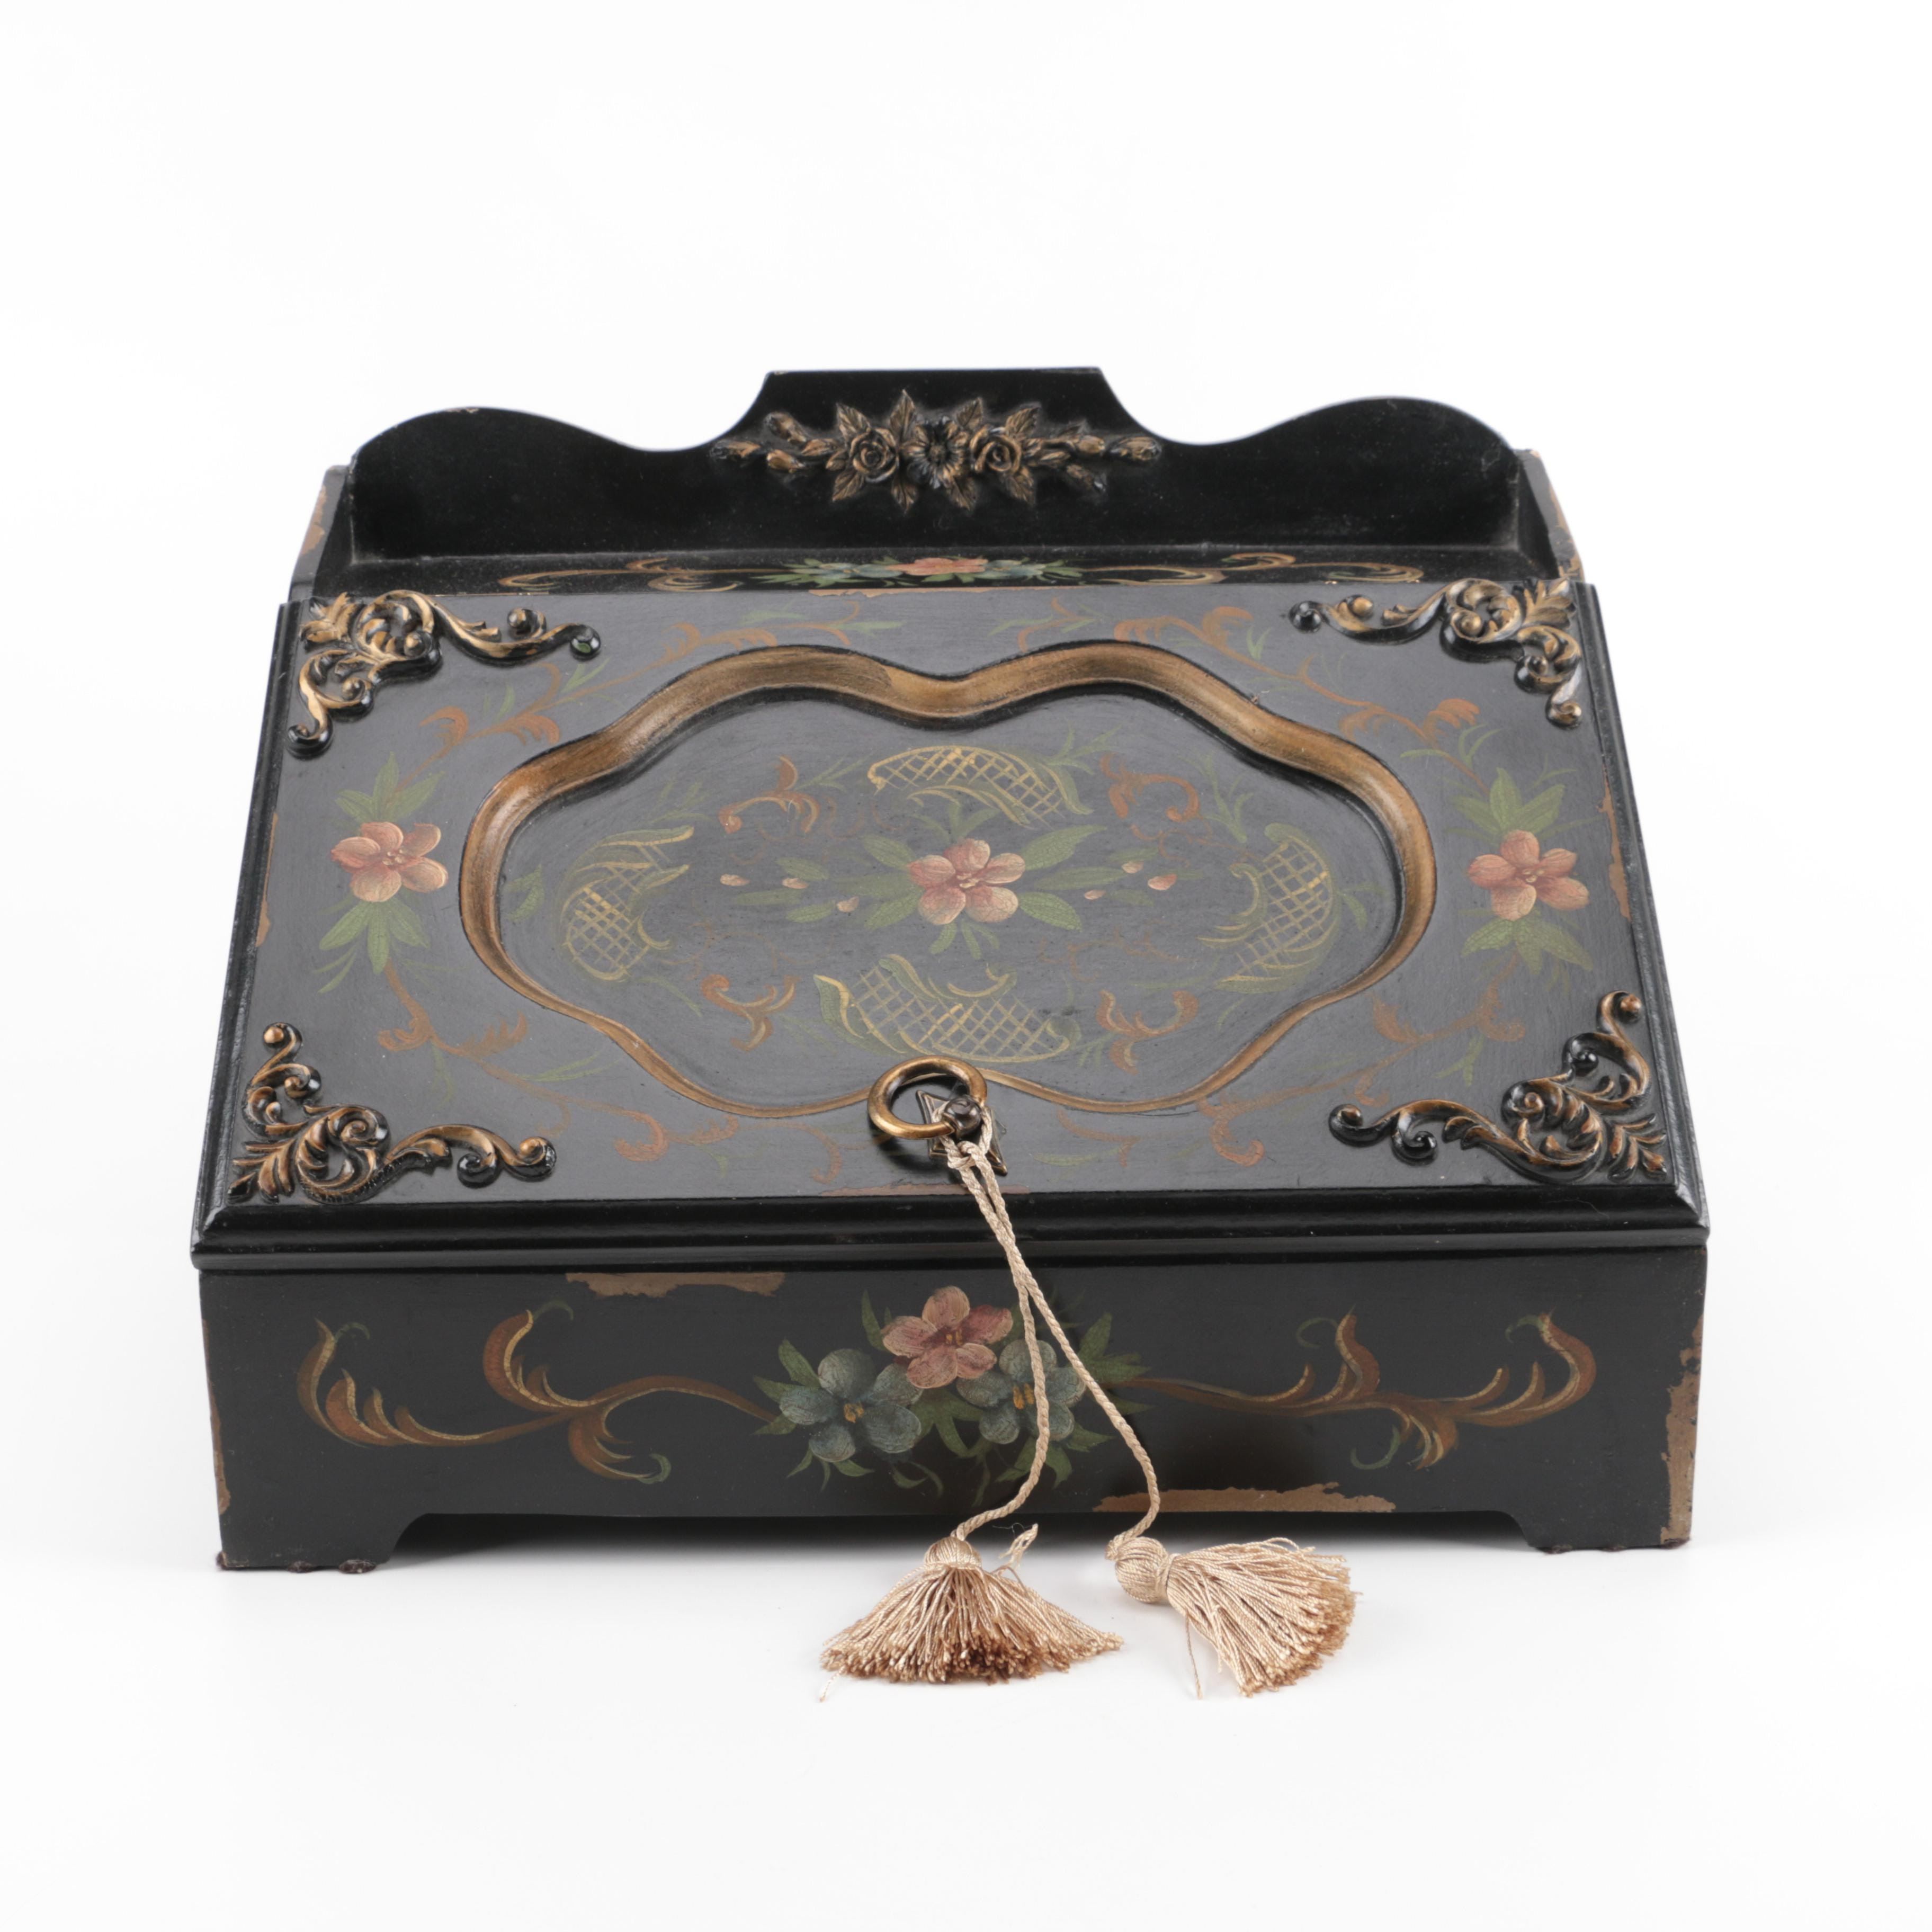 Slant Front Box With Painted Floral Motif